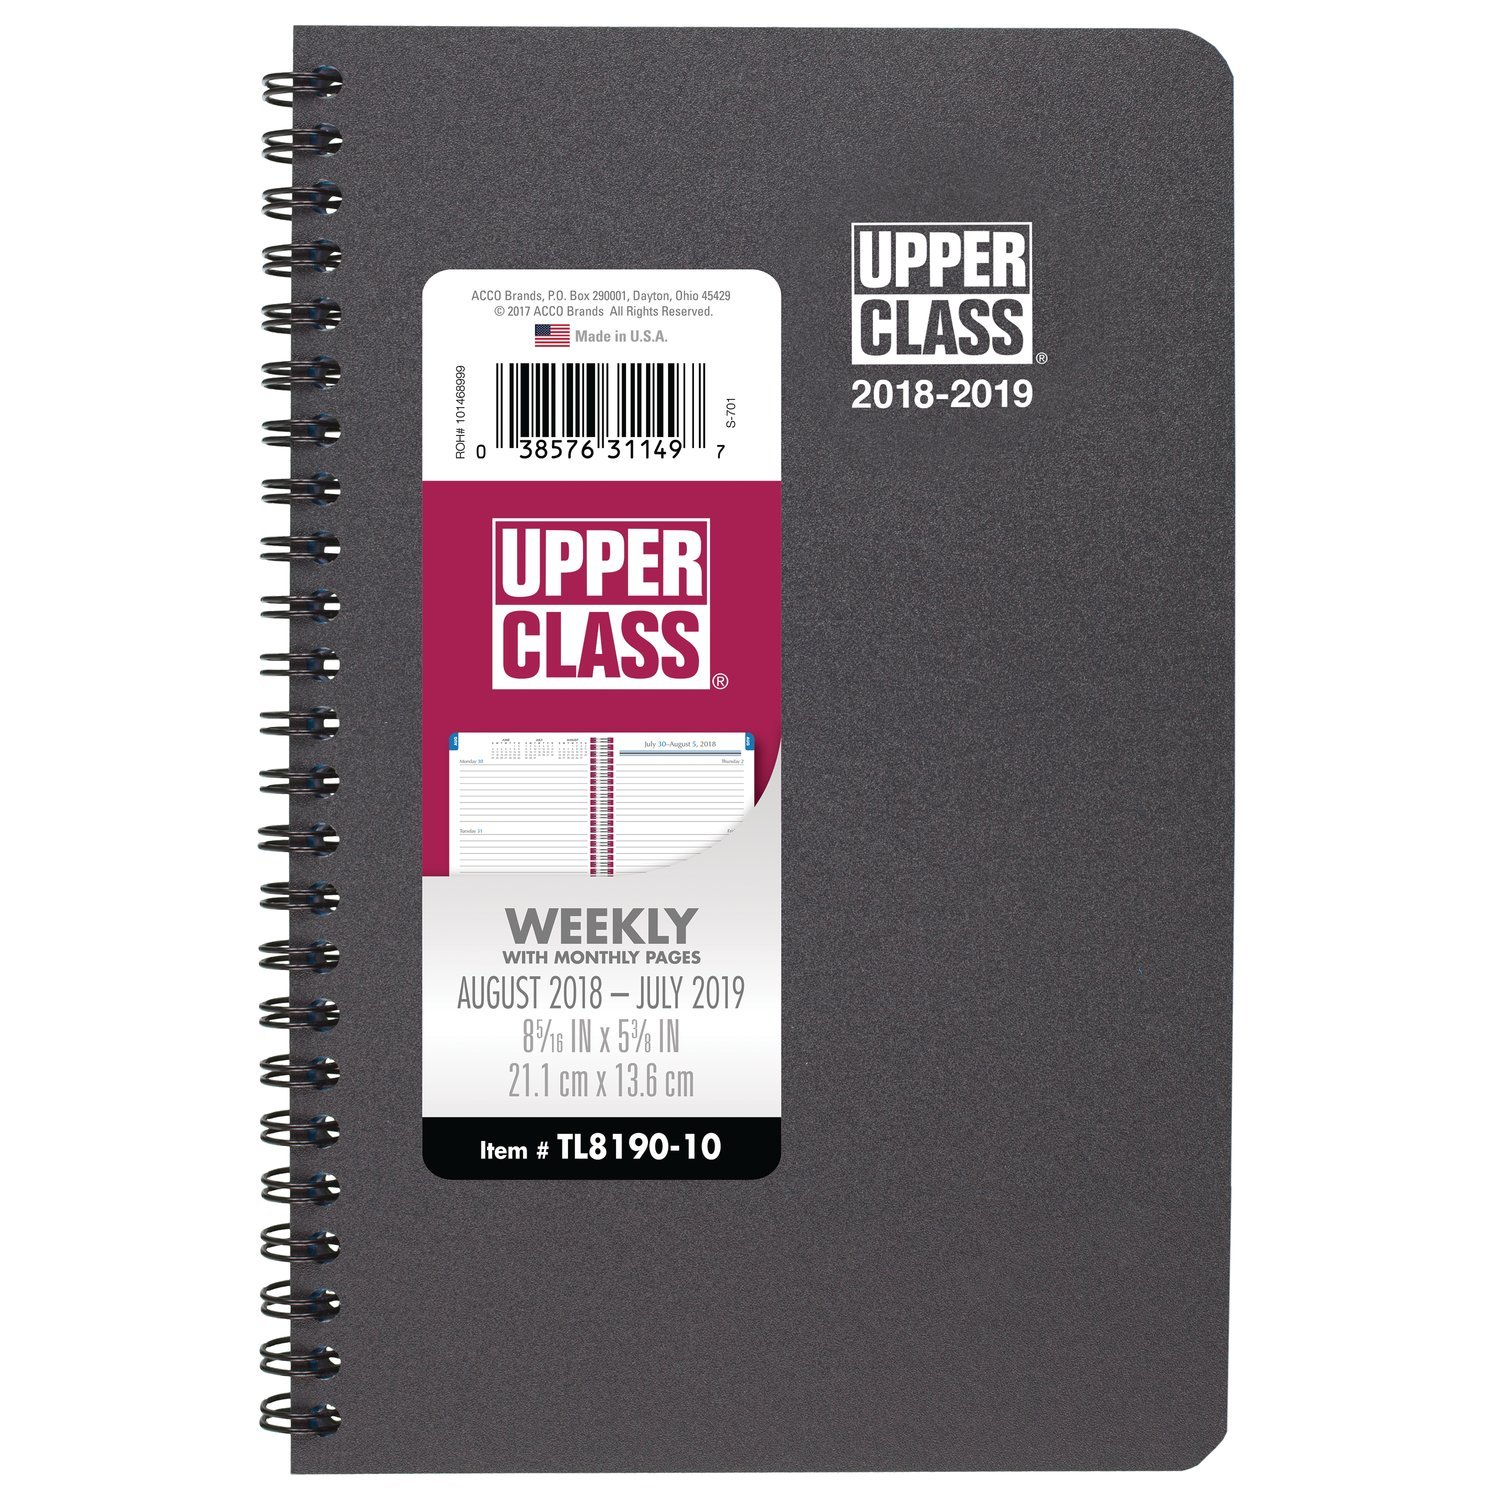 Upper Class 2018-2019 Academic Year Student Weekly & Monthly Planner, Small, 5-3/8 x 8-5/16, Gray (TL819007)